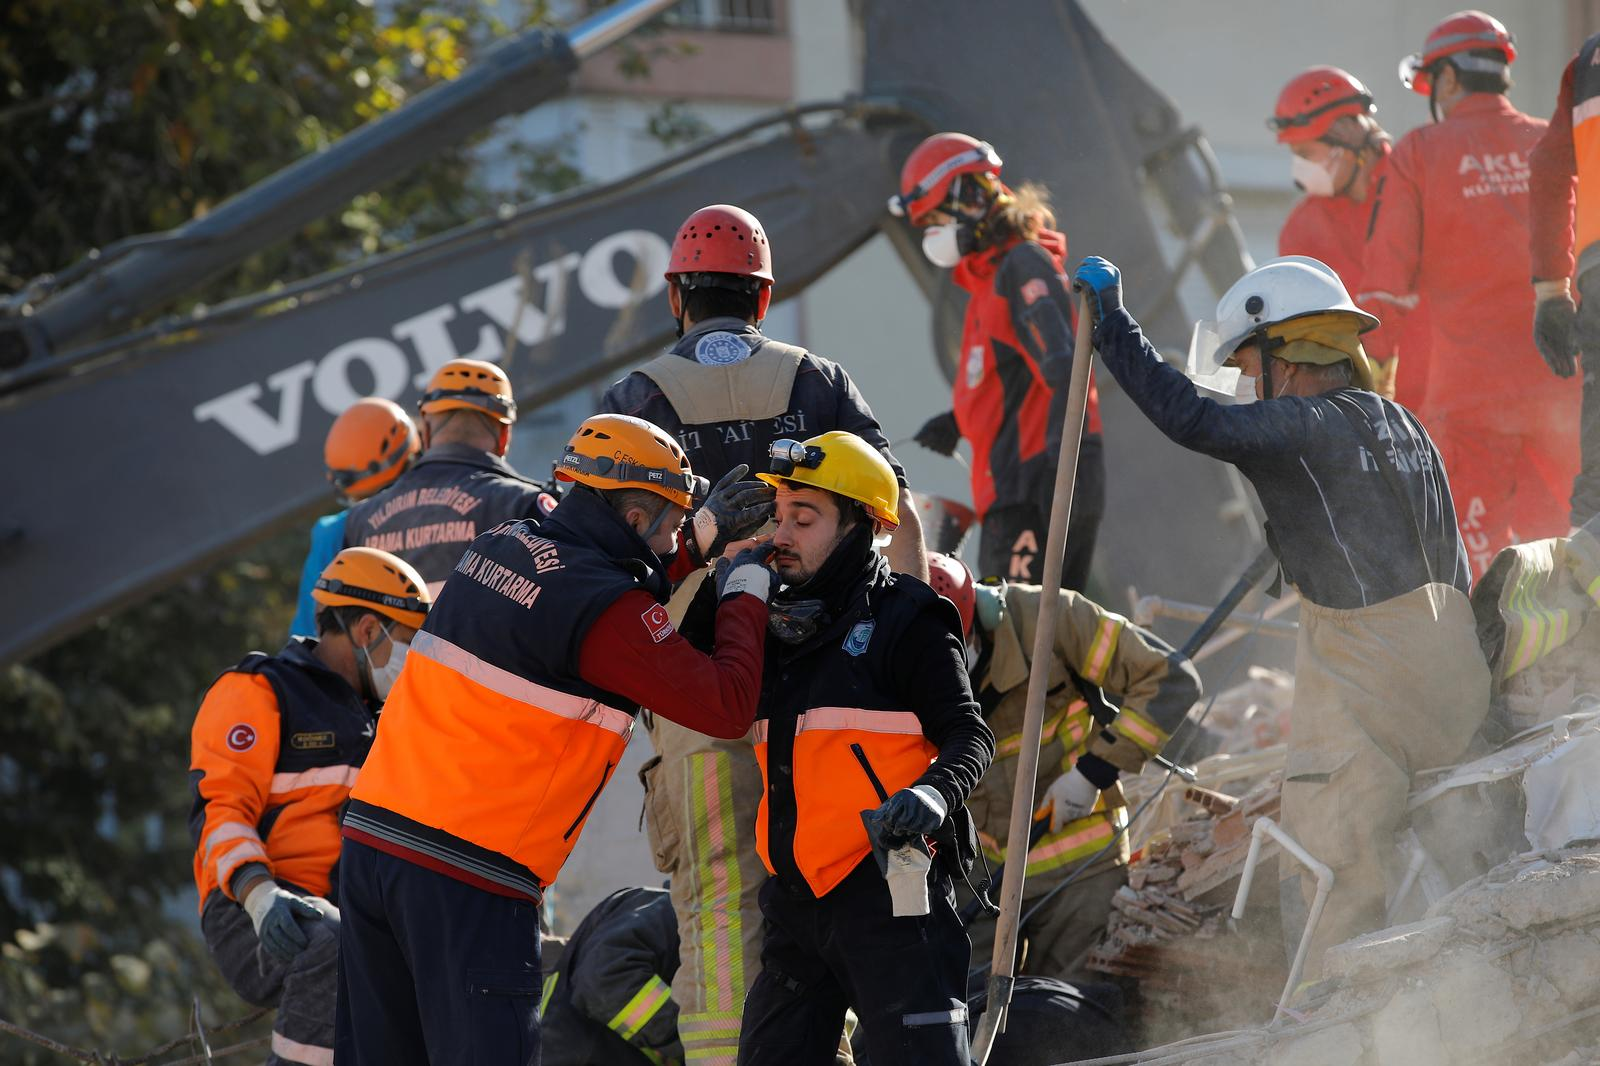 Three-year-old rescued from rubble, Turkey quake death toll hits 81